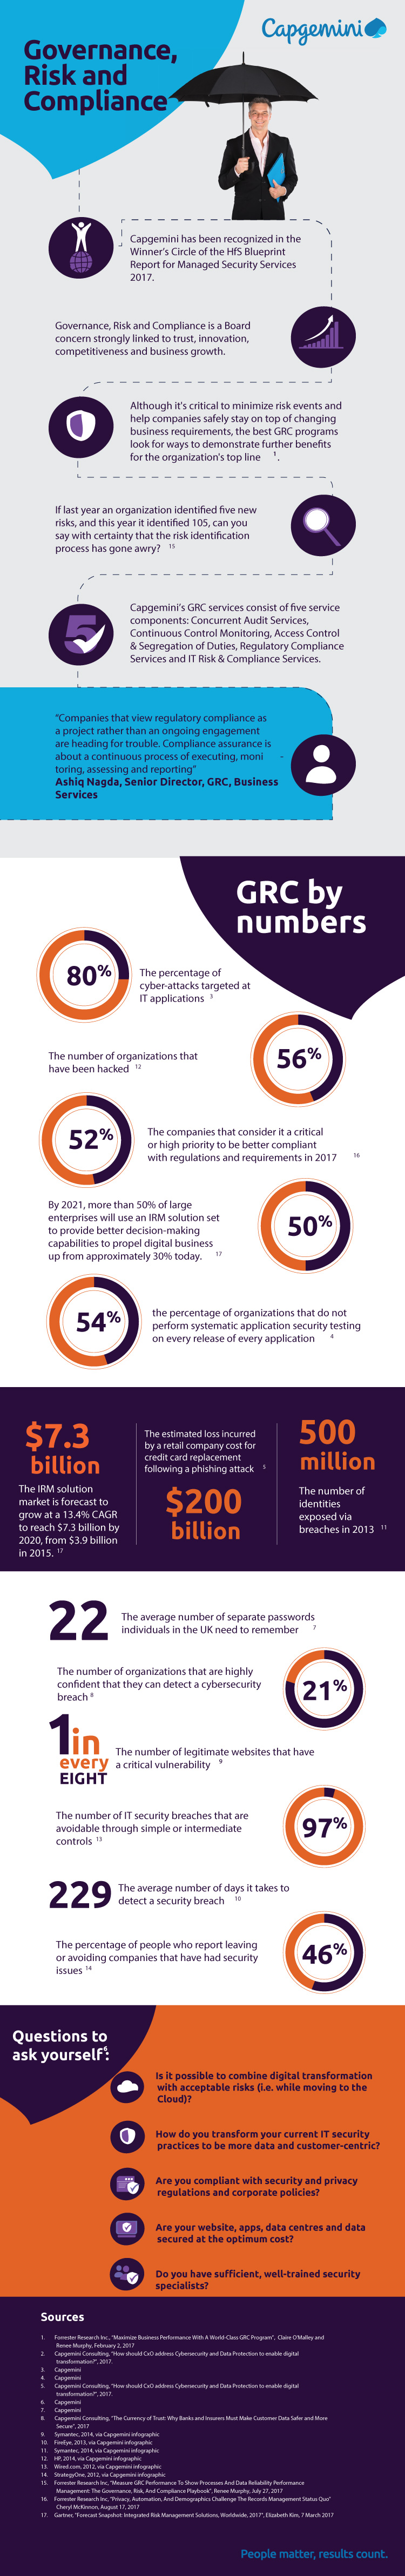 Governance Risk and Compliance(GRC) Infographic